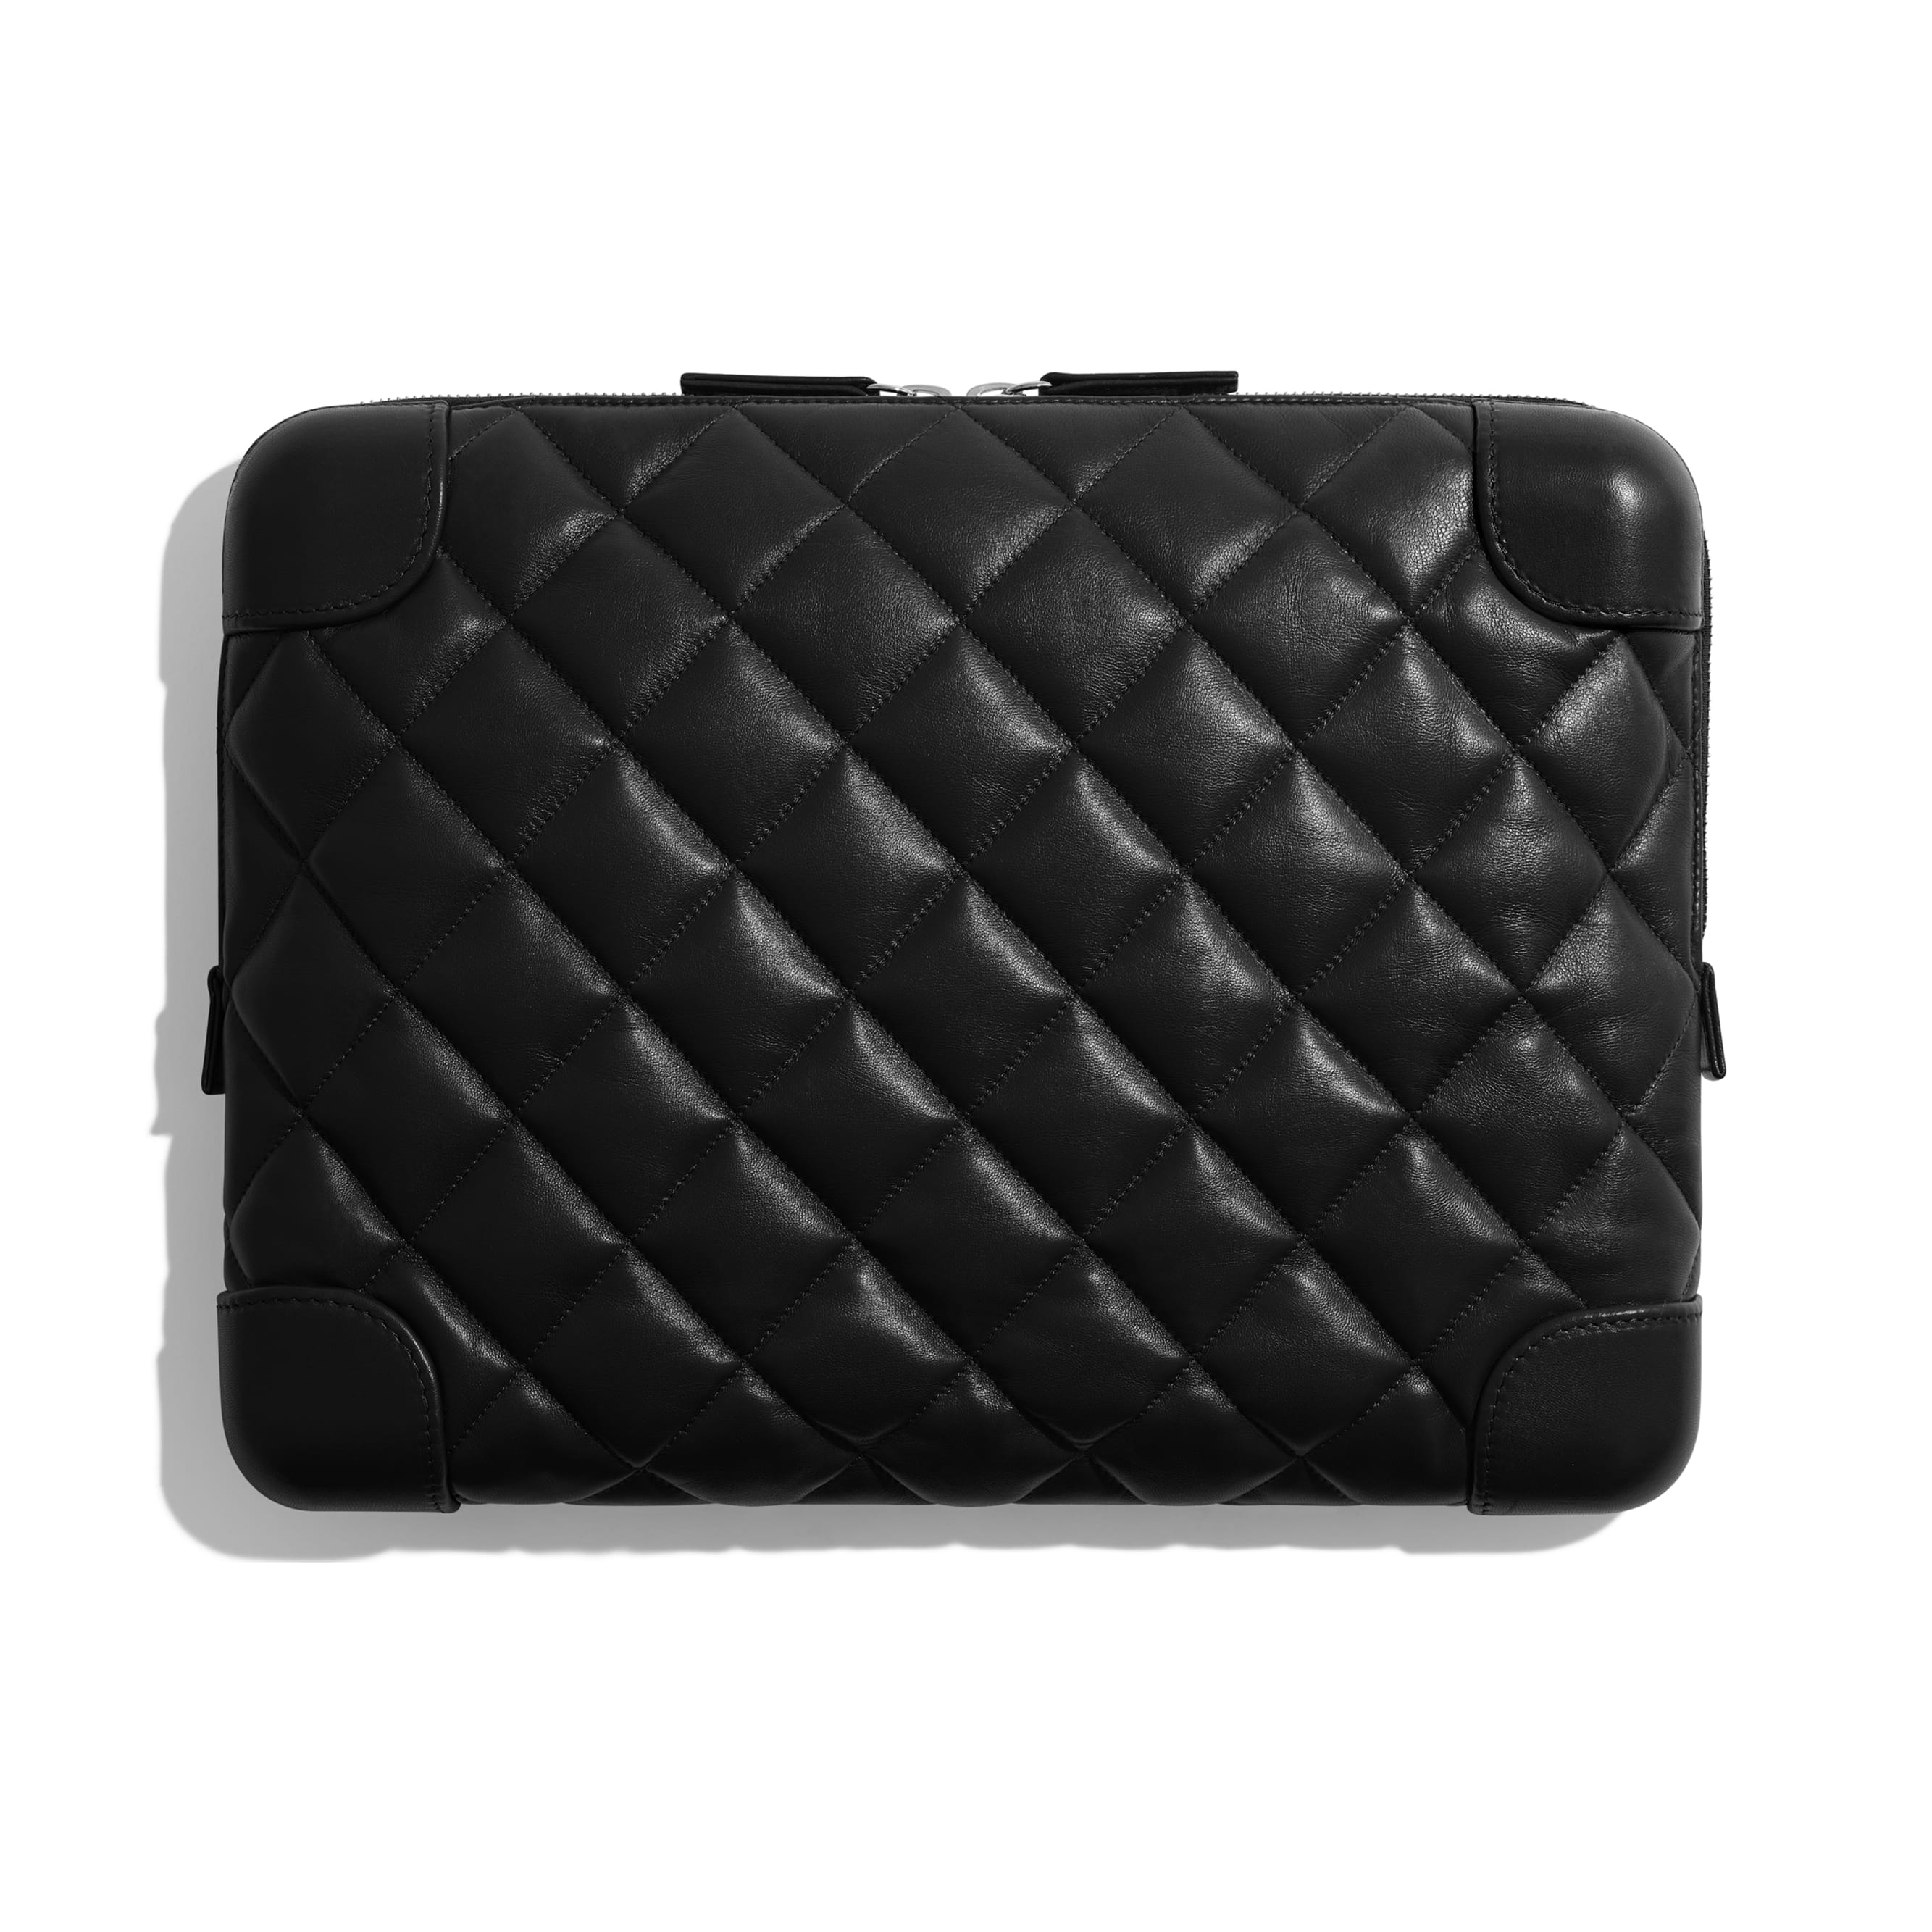 Large Clutch - Black - Lambskin - Alternative view - see standard sized version